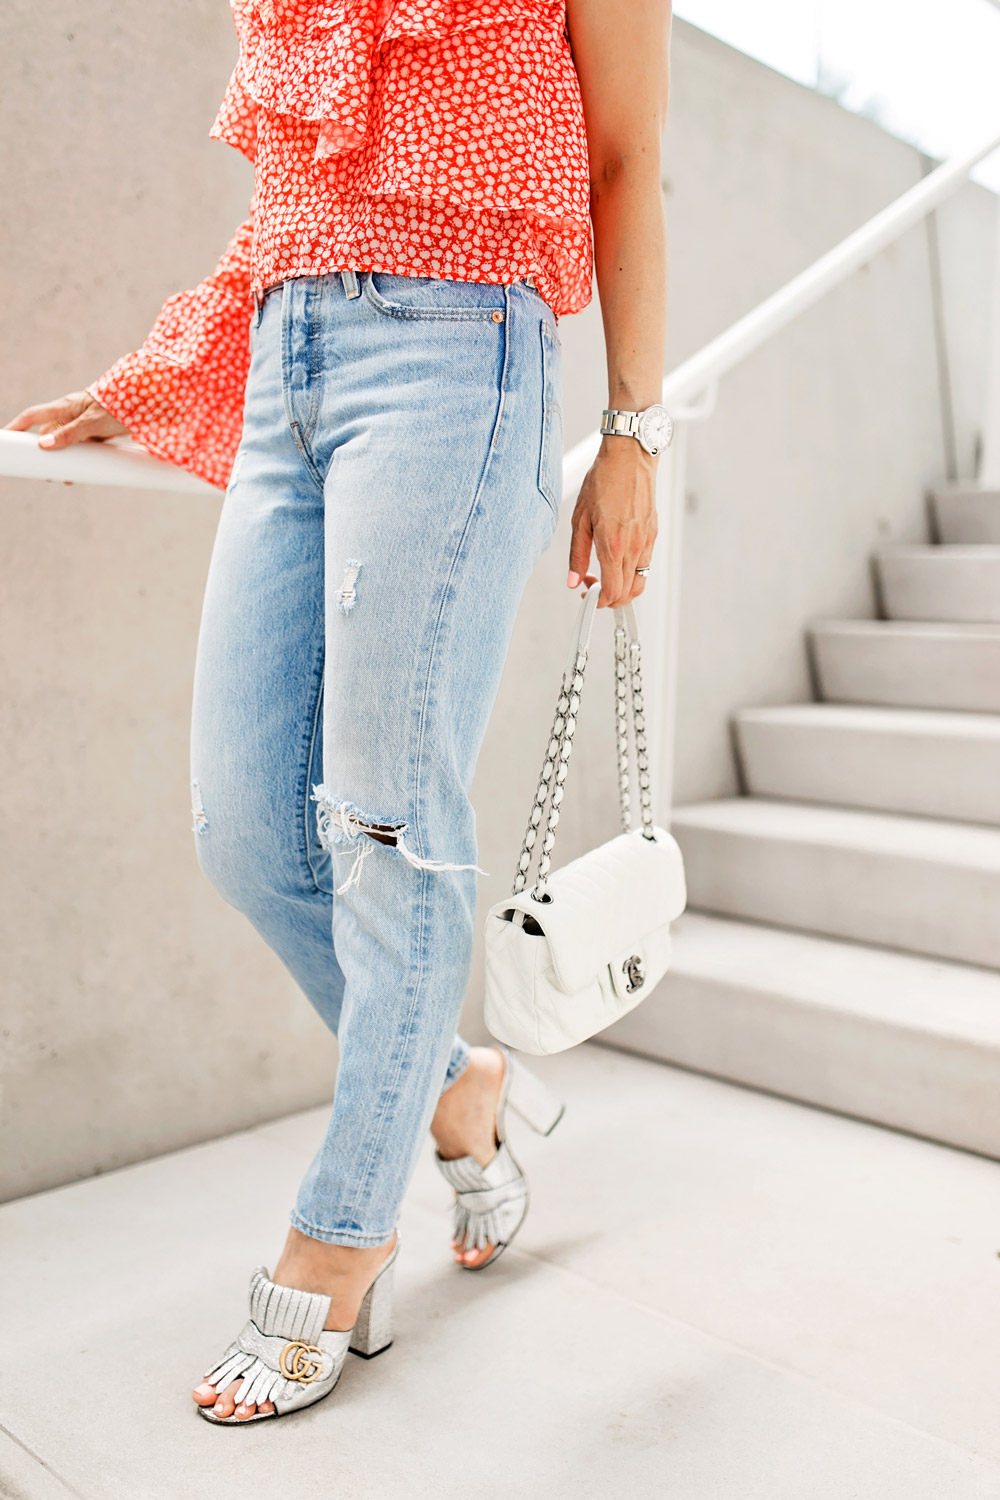 rosie assoulin corkscrew one shoulder ruffle top dupe levi's wedgie jeans gucci silver mules chanel white flap